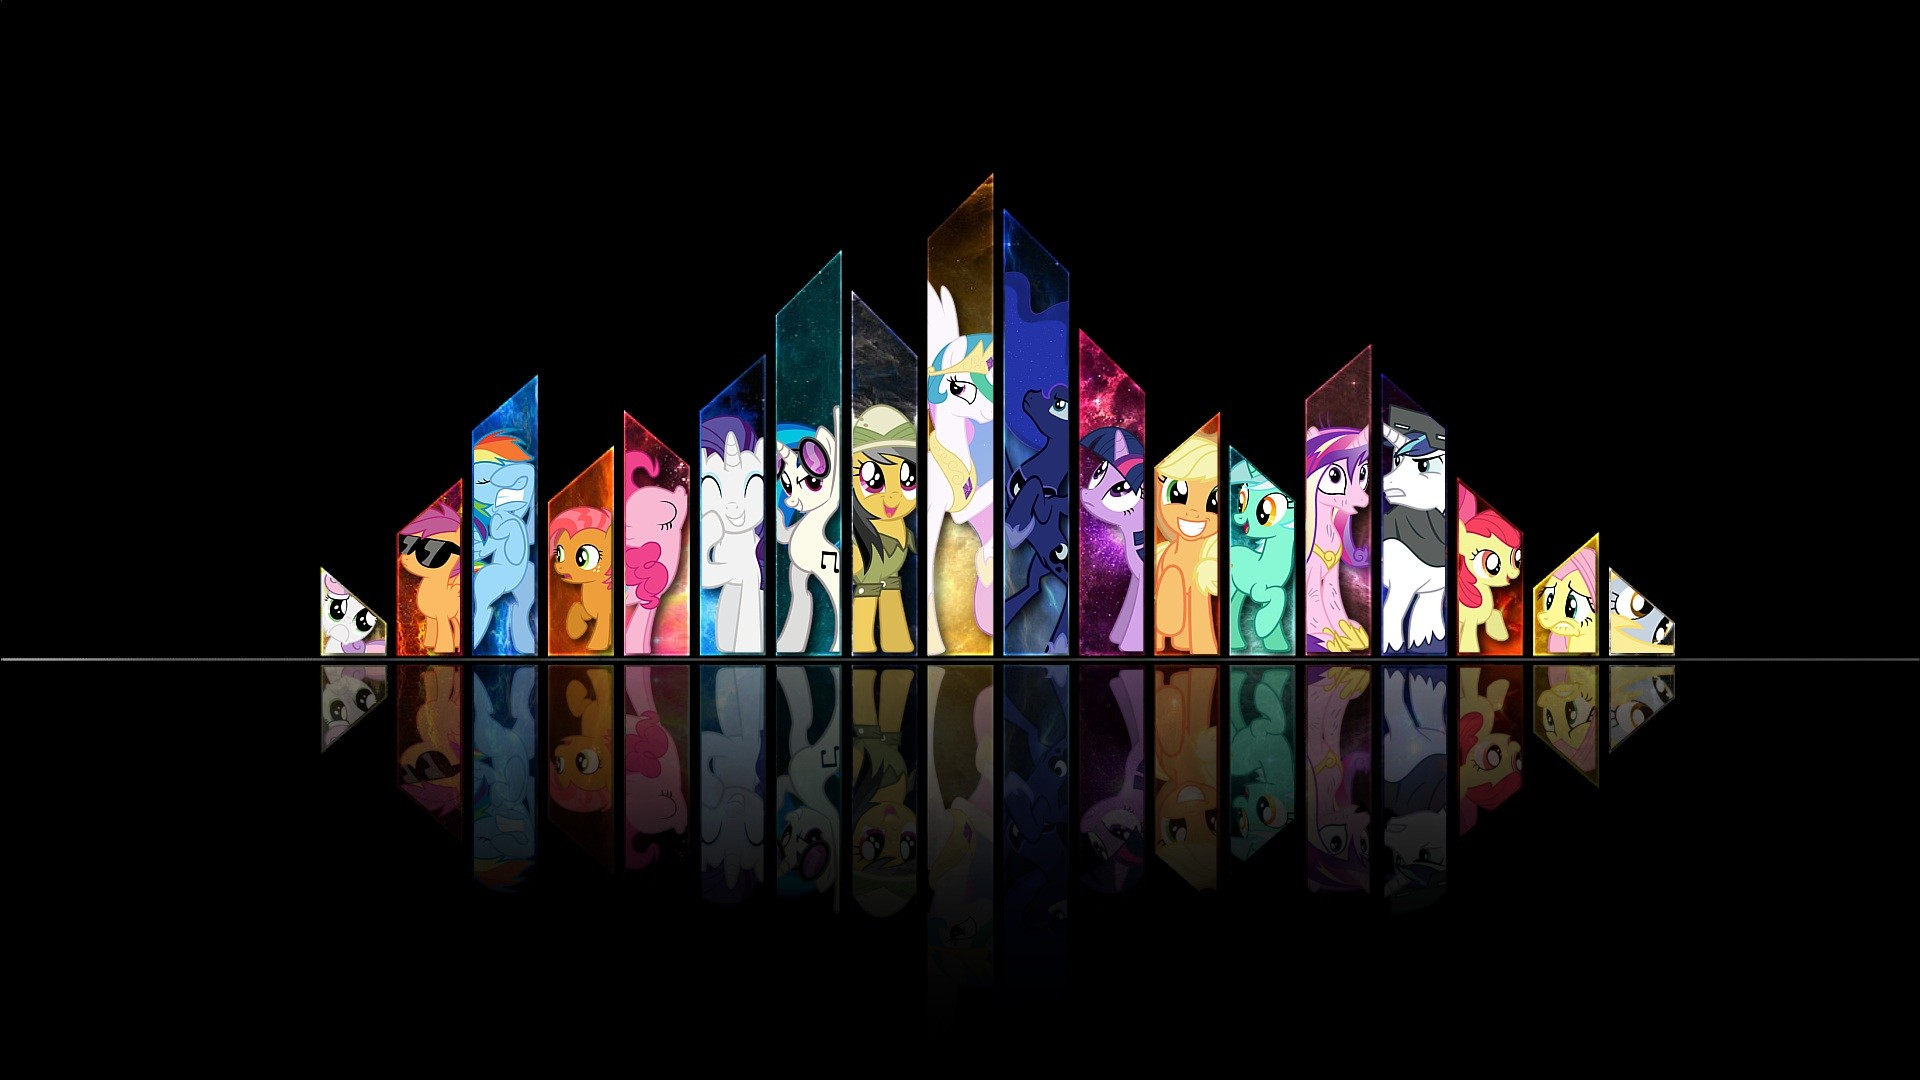 1920x1080 My Little Pony HD Wallpapers – Backgrounds for PC & Mac, Laptop, Tablet,  Mobile Phone